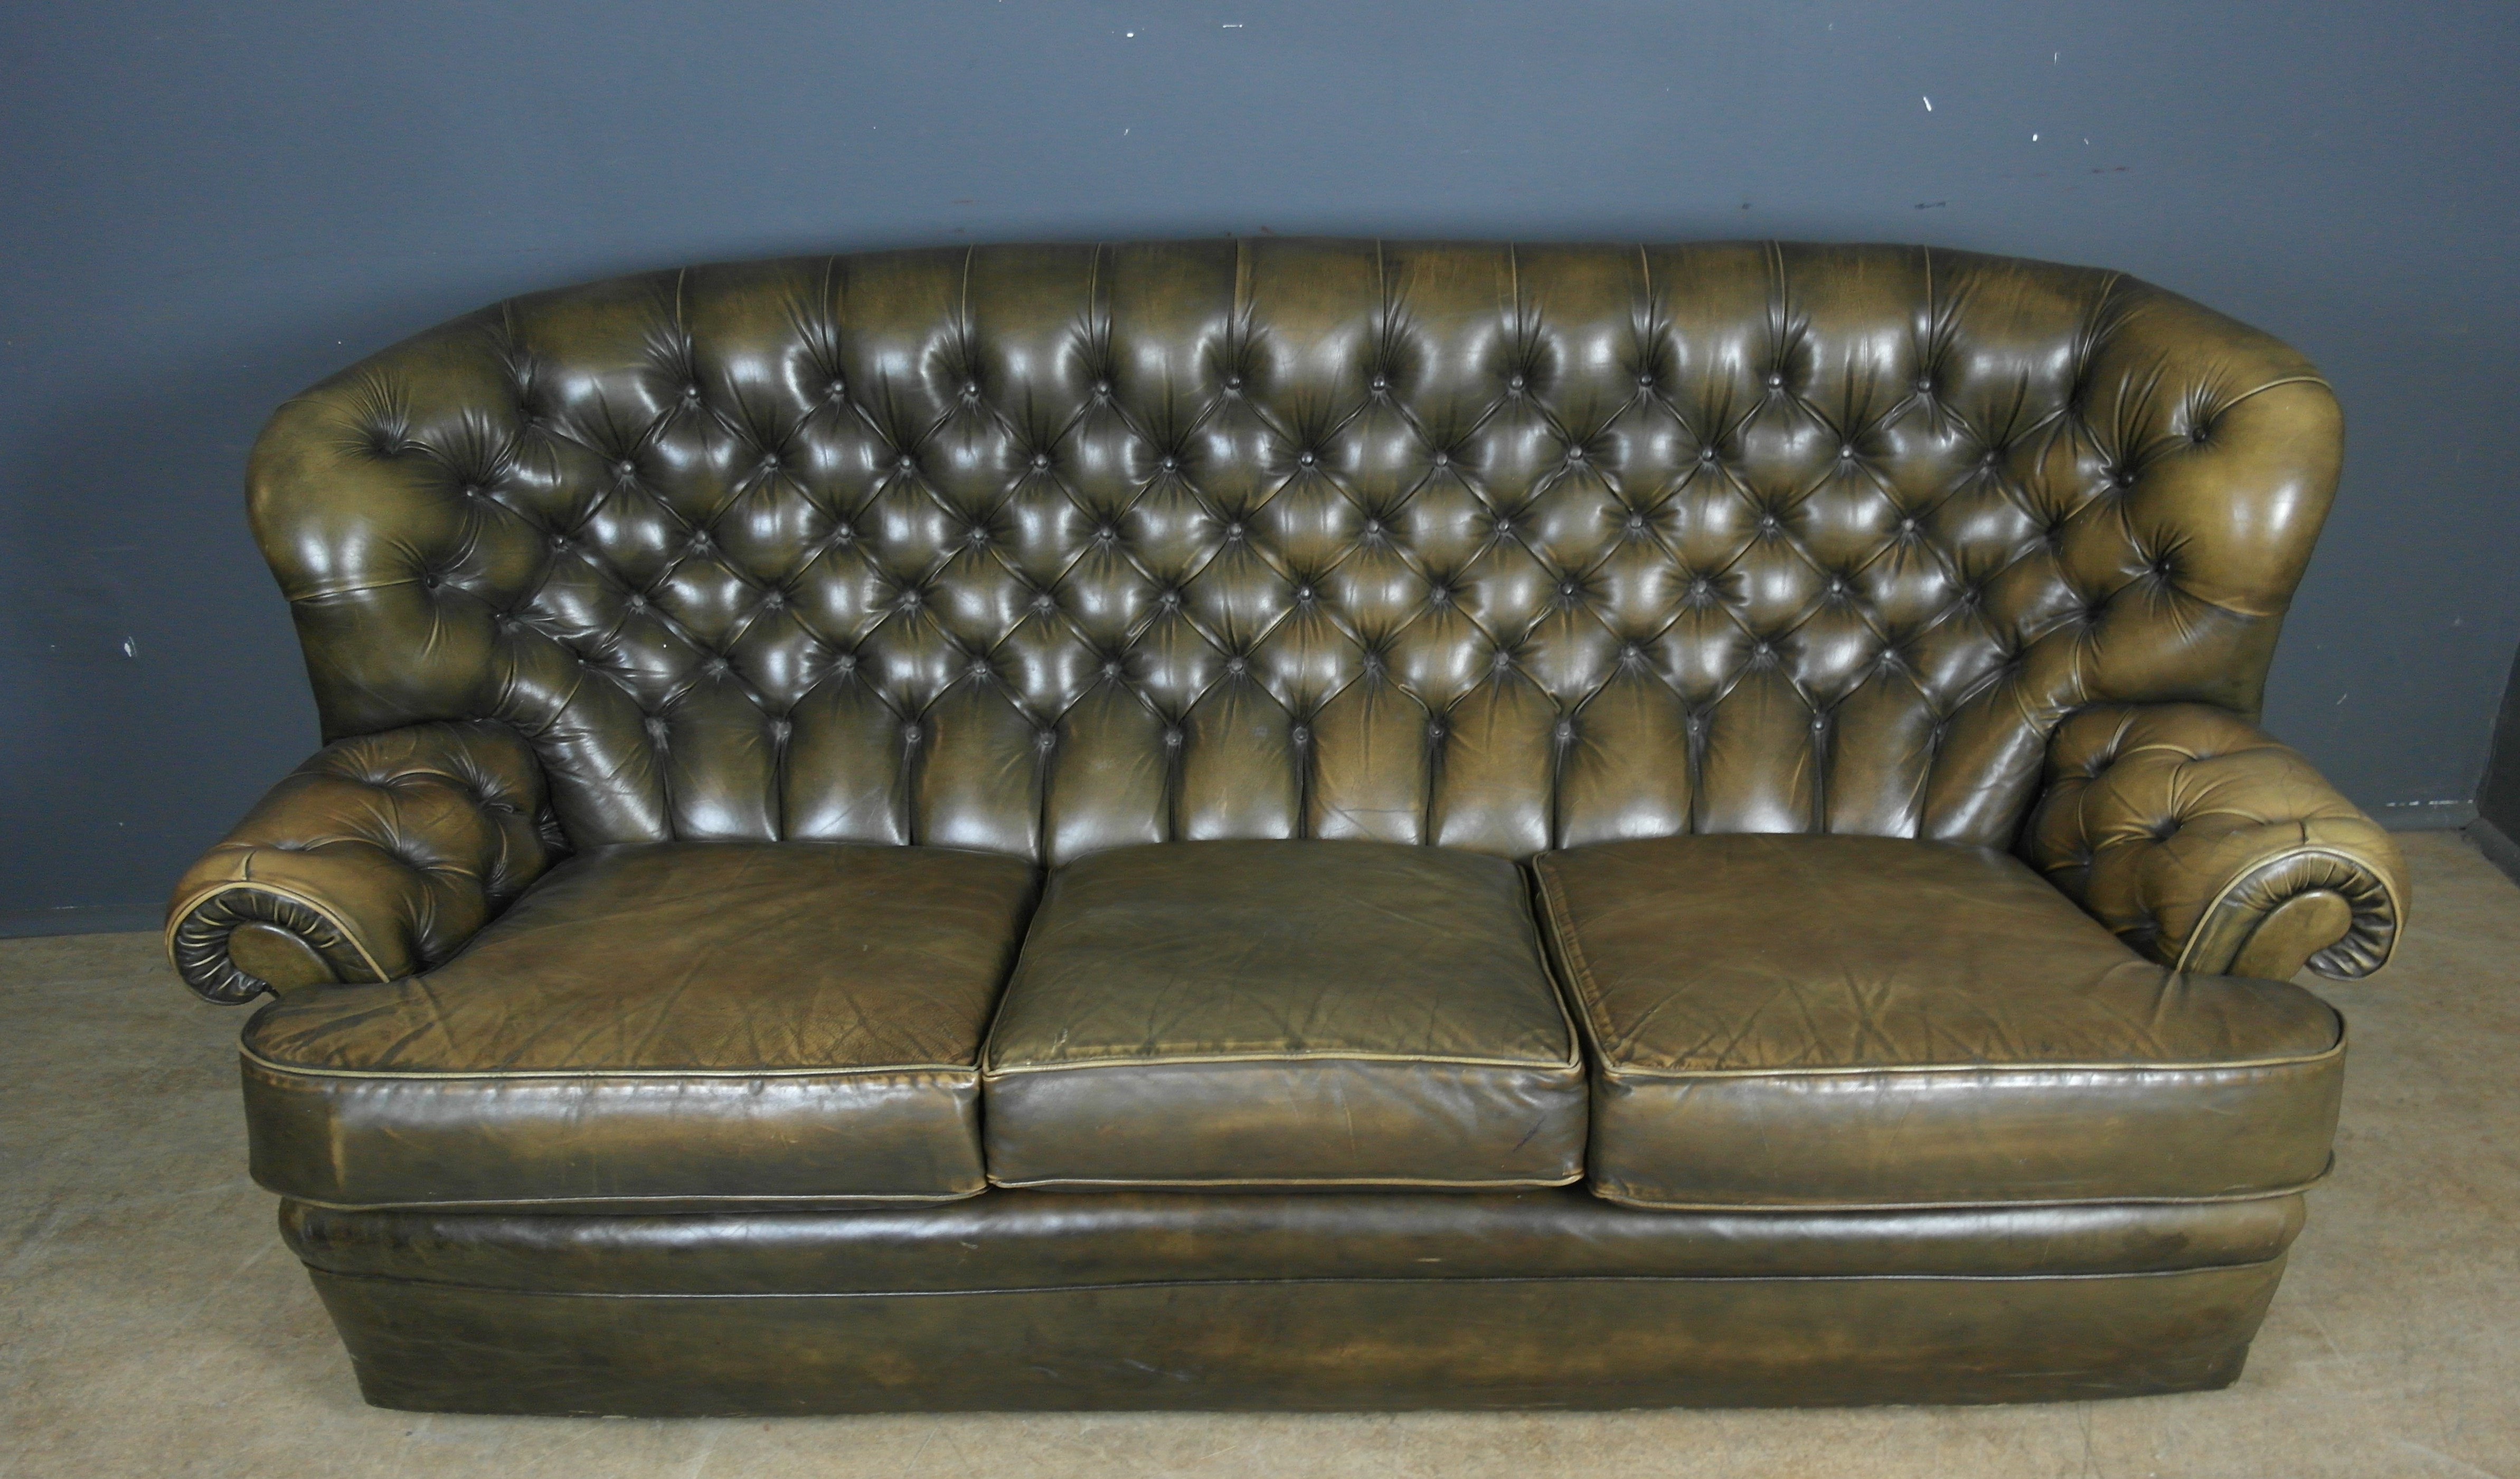 VINTAGE PEGASUS GOLDEN GREEN LEATHER CHESTERFIELD SOFA